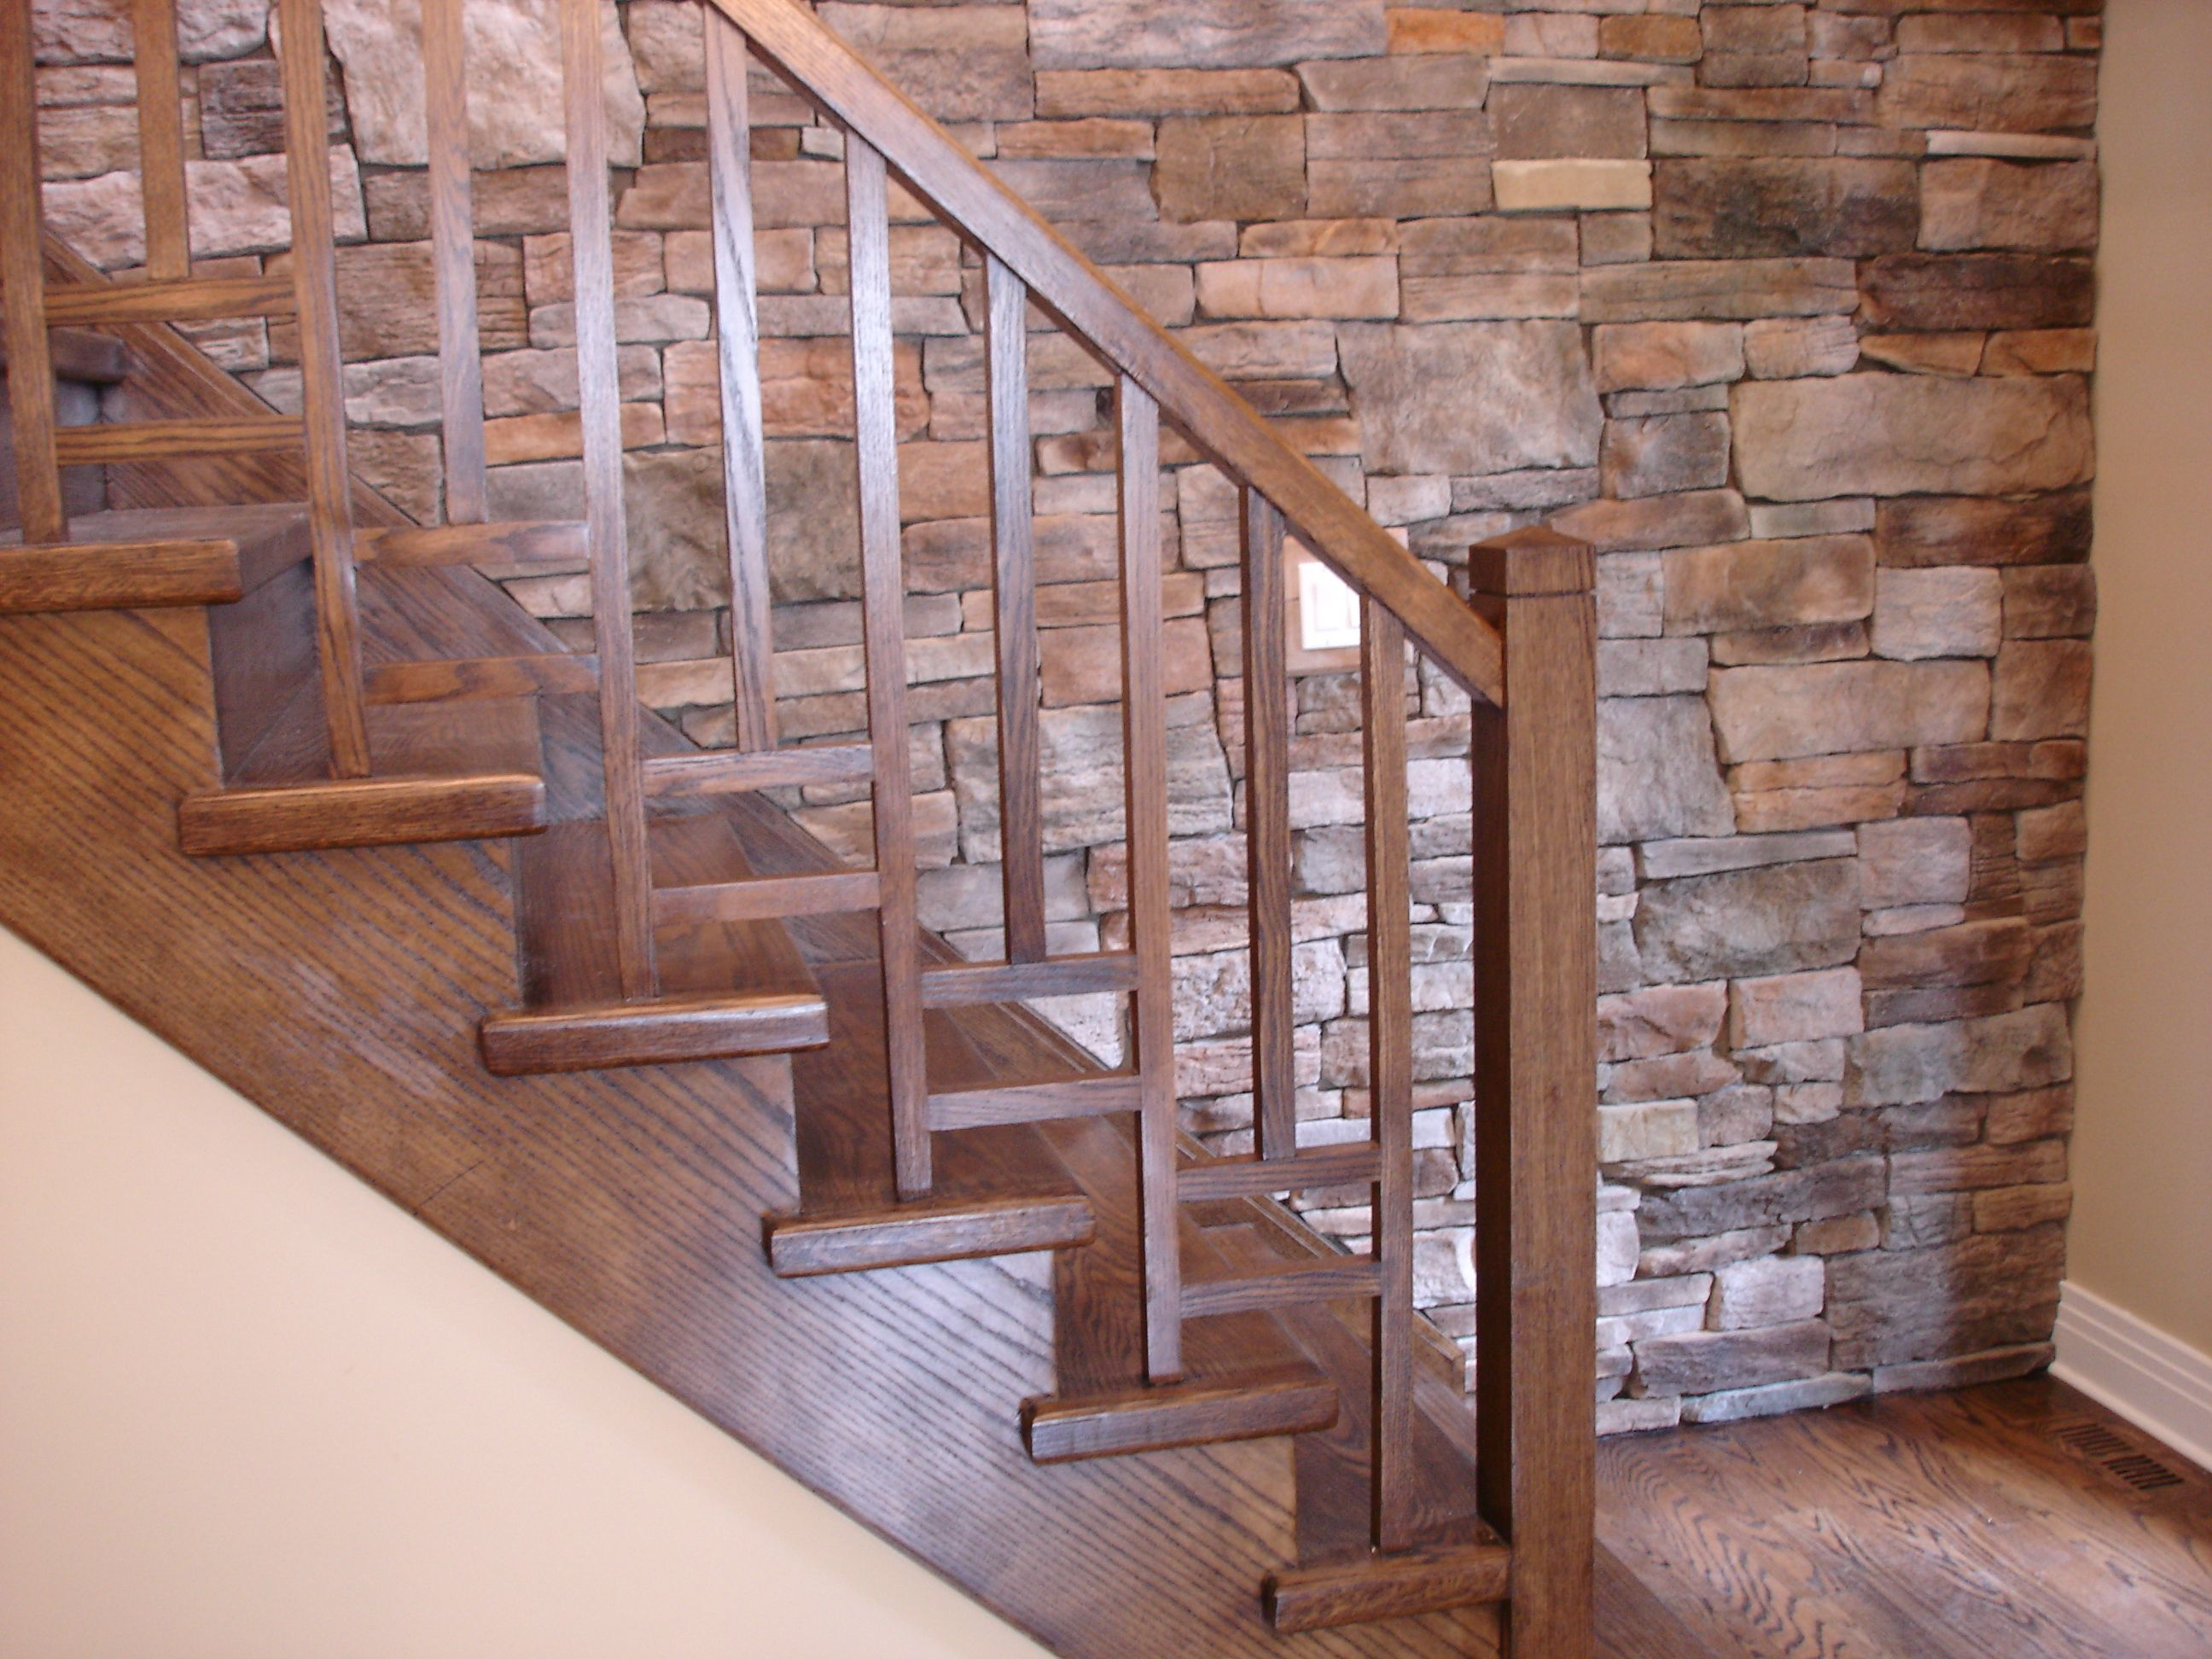 Modern Interior Stair Railings | Mestel Brothers Stairs Rails Inc 516 496  4127 Wood Stair Builders .